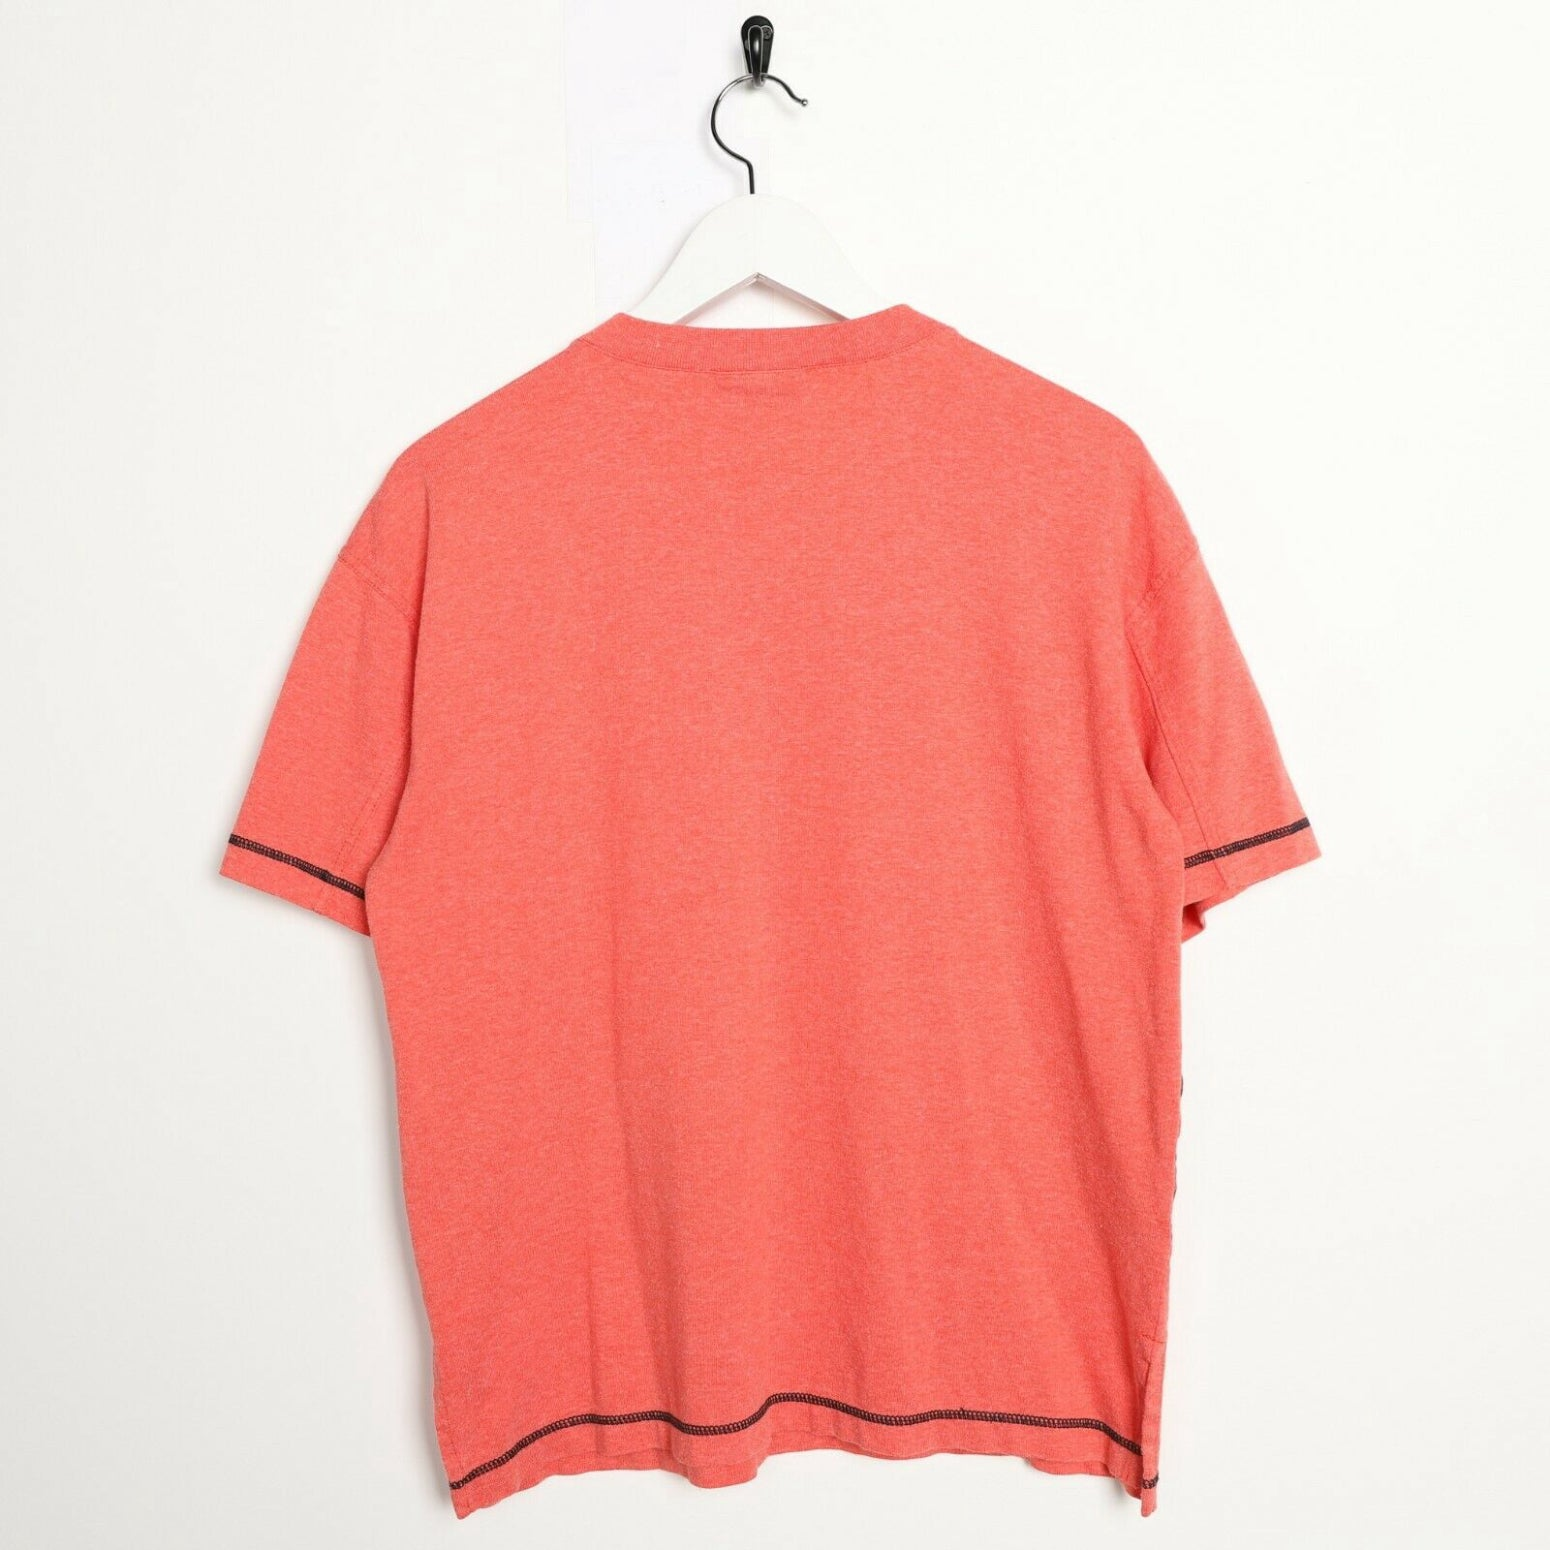 Vintage 90s DIADORA Graphic T Shirt Tee Red Small S